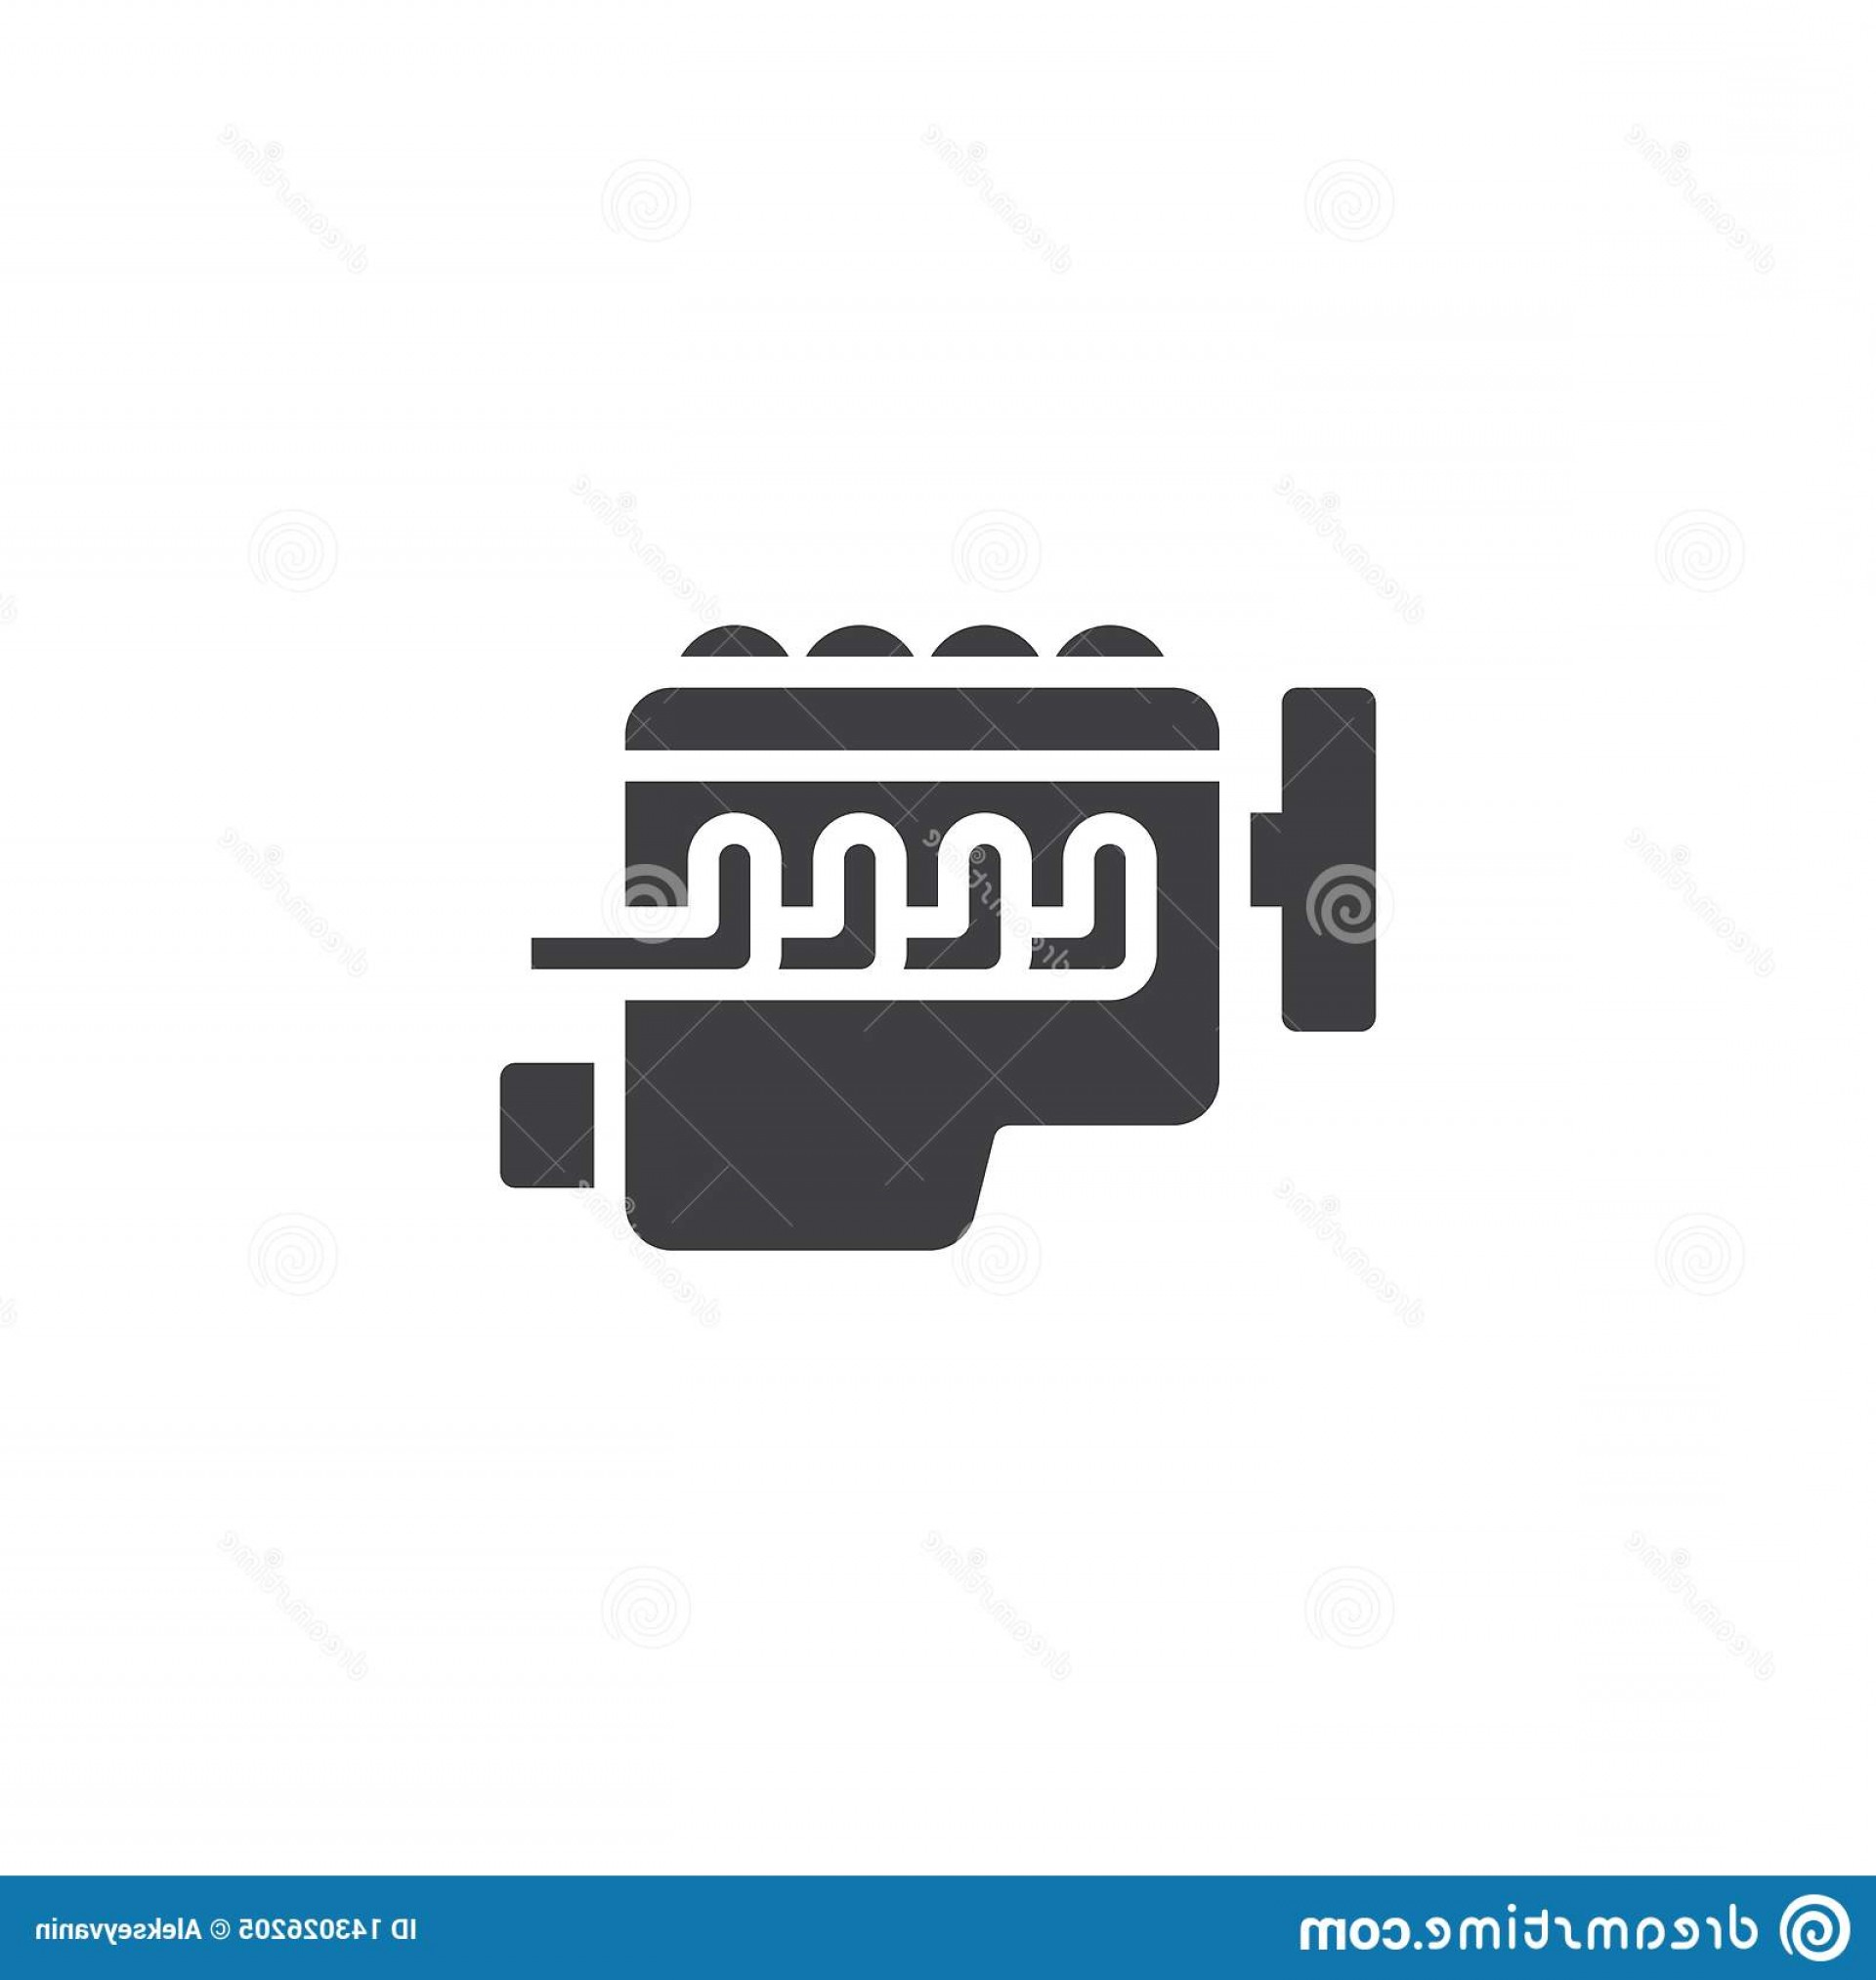 Combustible Engine Vector: Car Internal Combustion Engine Vector Icon Car Internal Combustion Engine Vector Icon Filled Flat Sign Mobile Concept Web Image